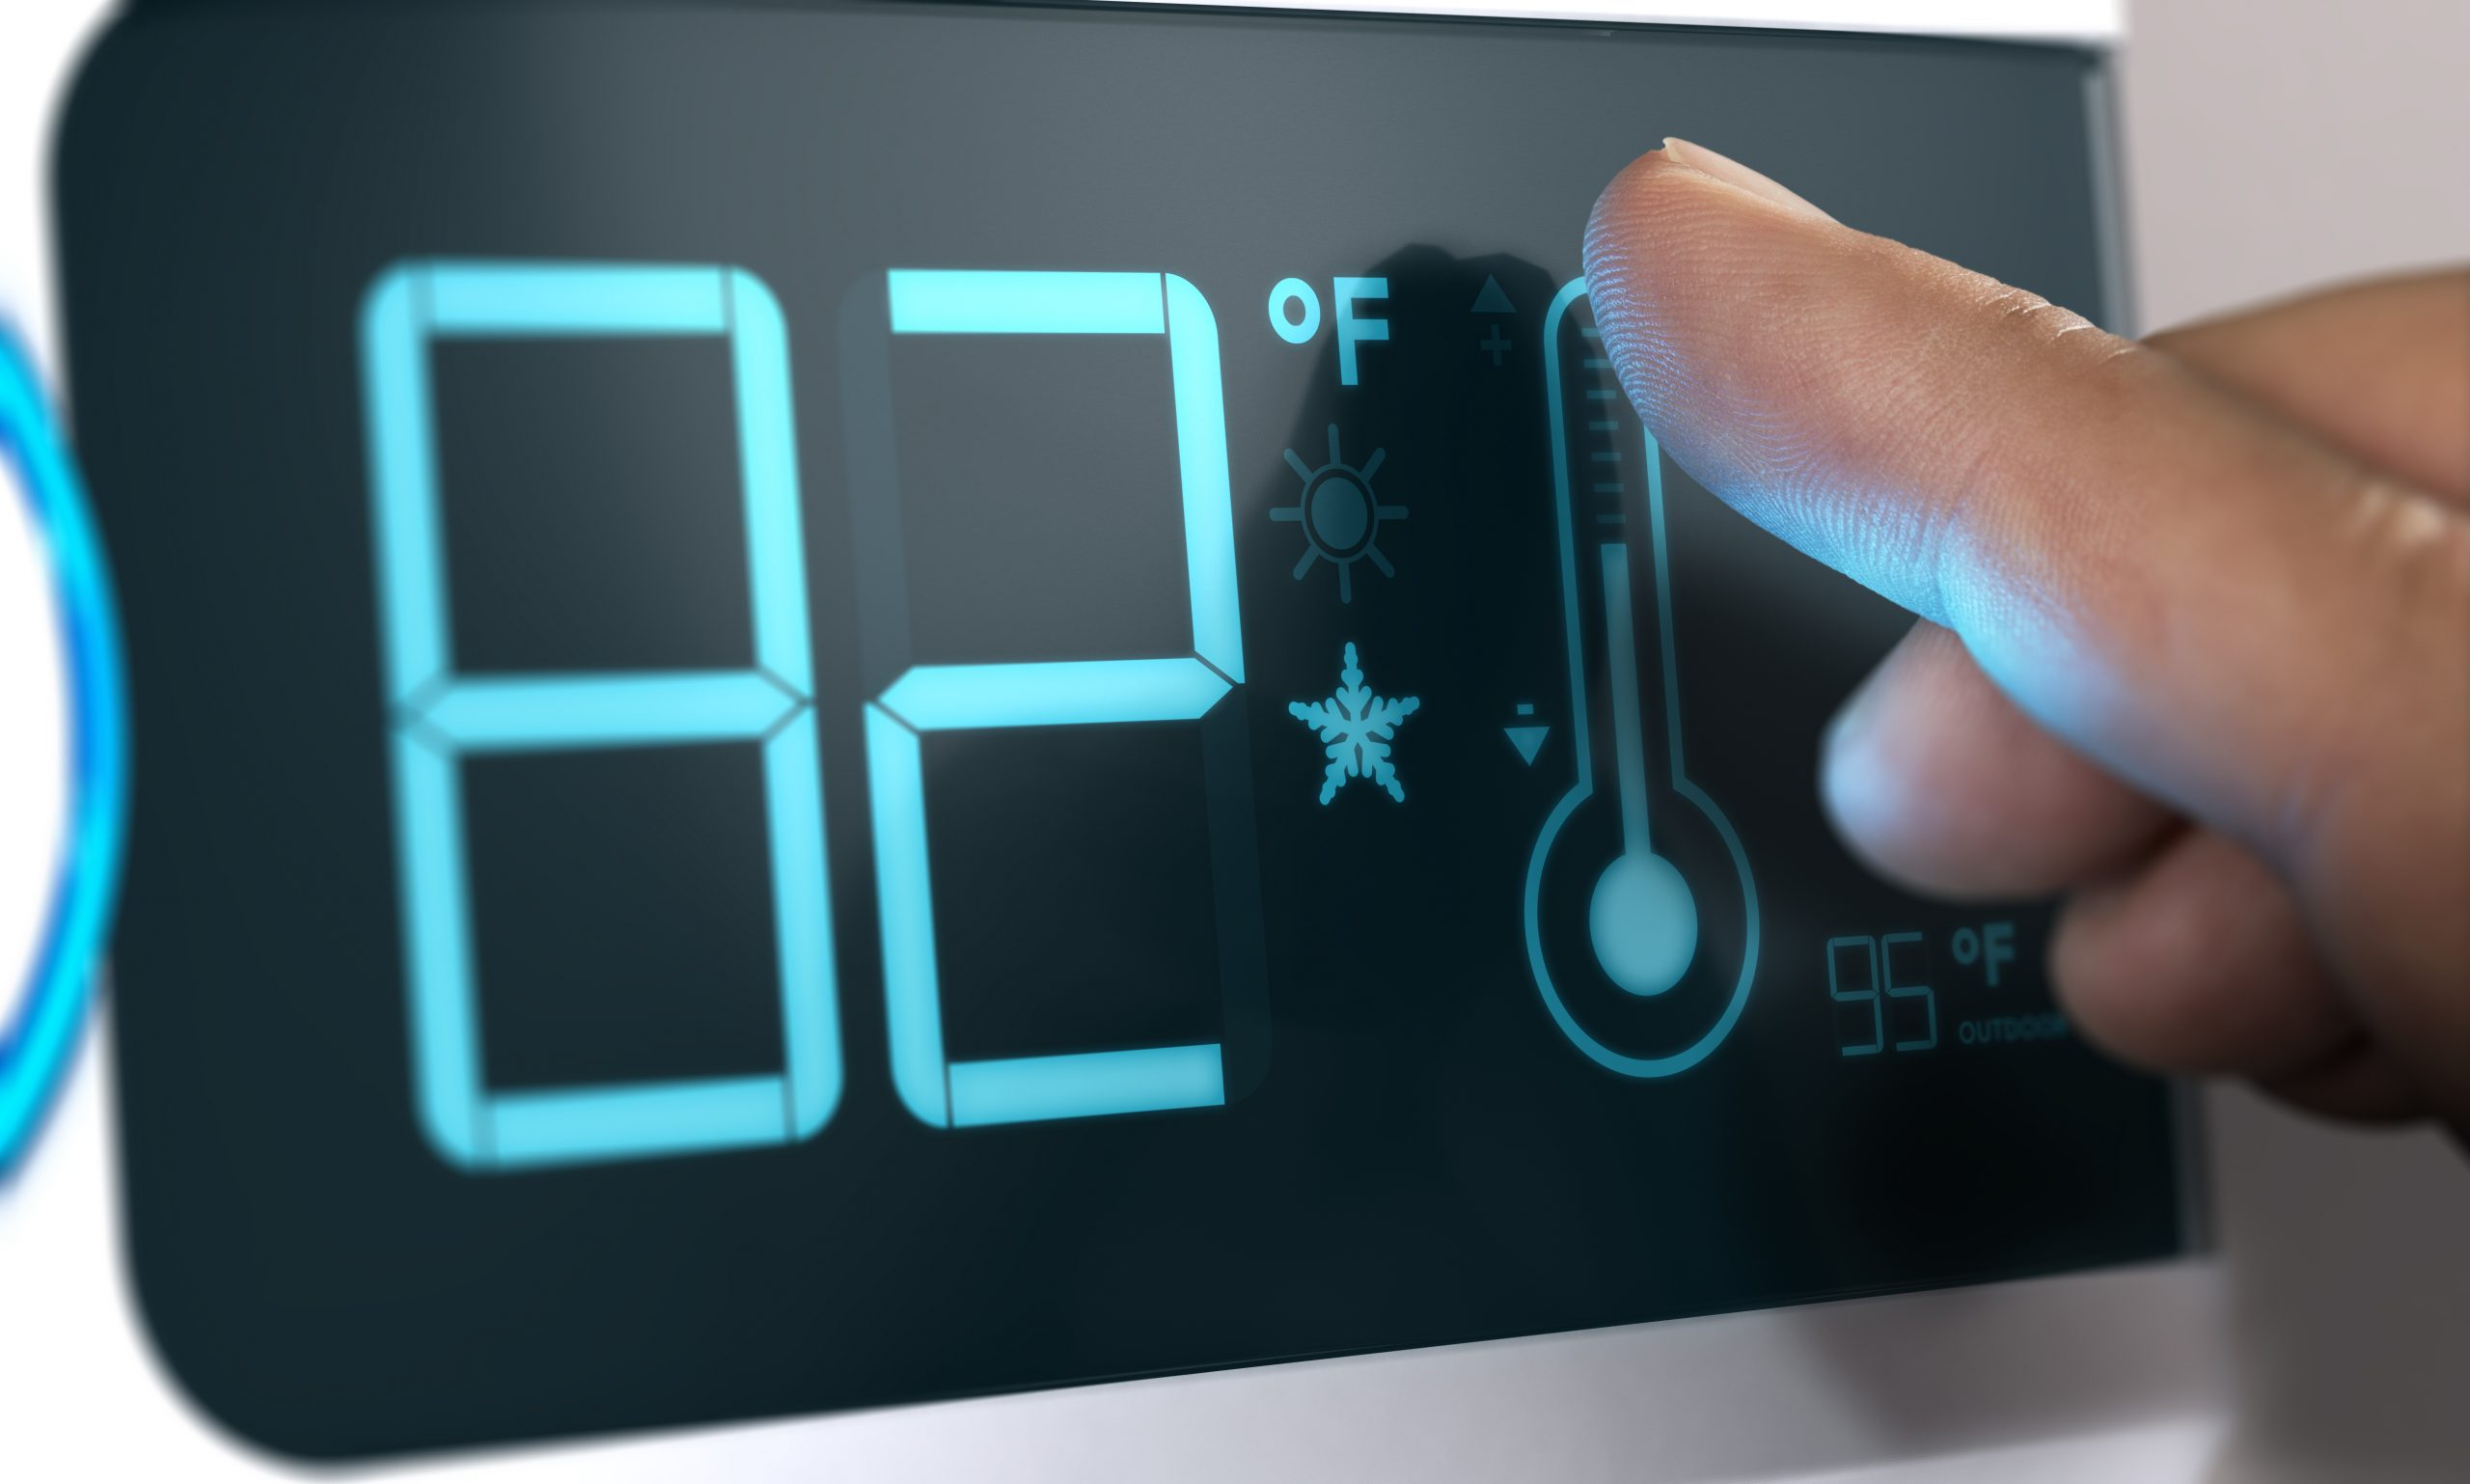 Finger,Touching,A,Digital,Thermostat,Temperature,Controller,To,Set,It